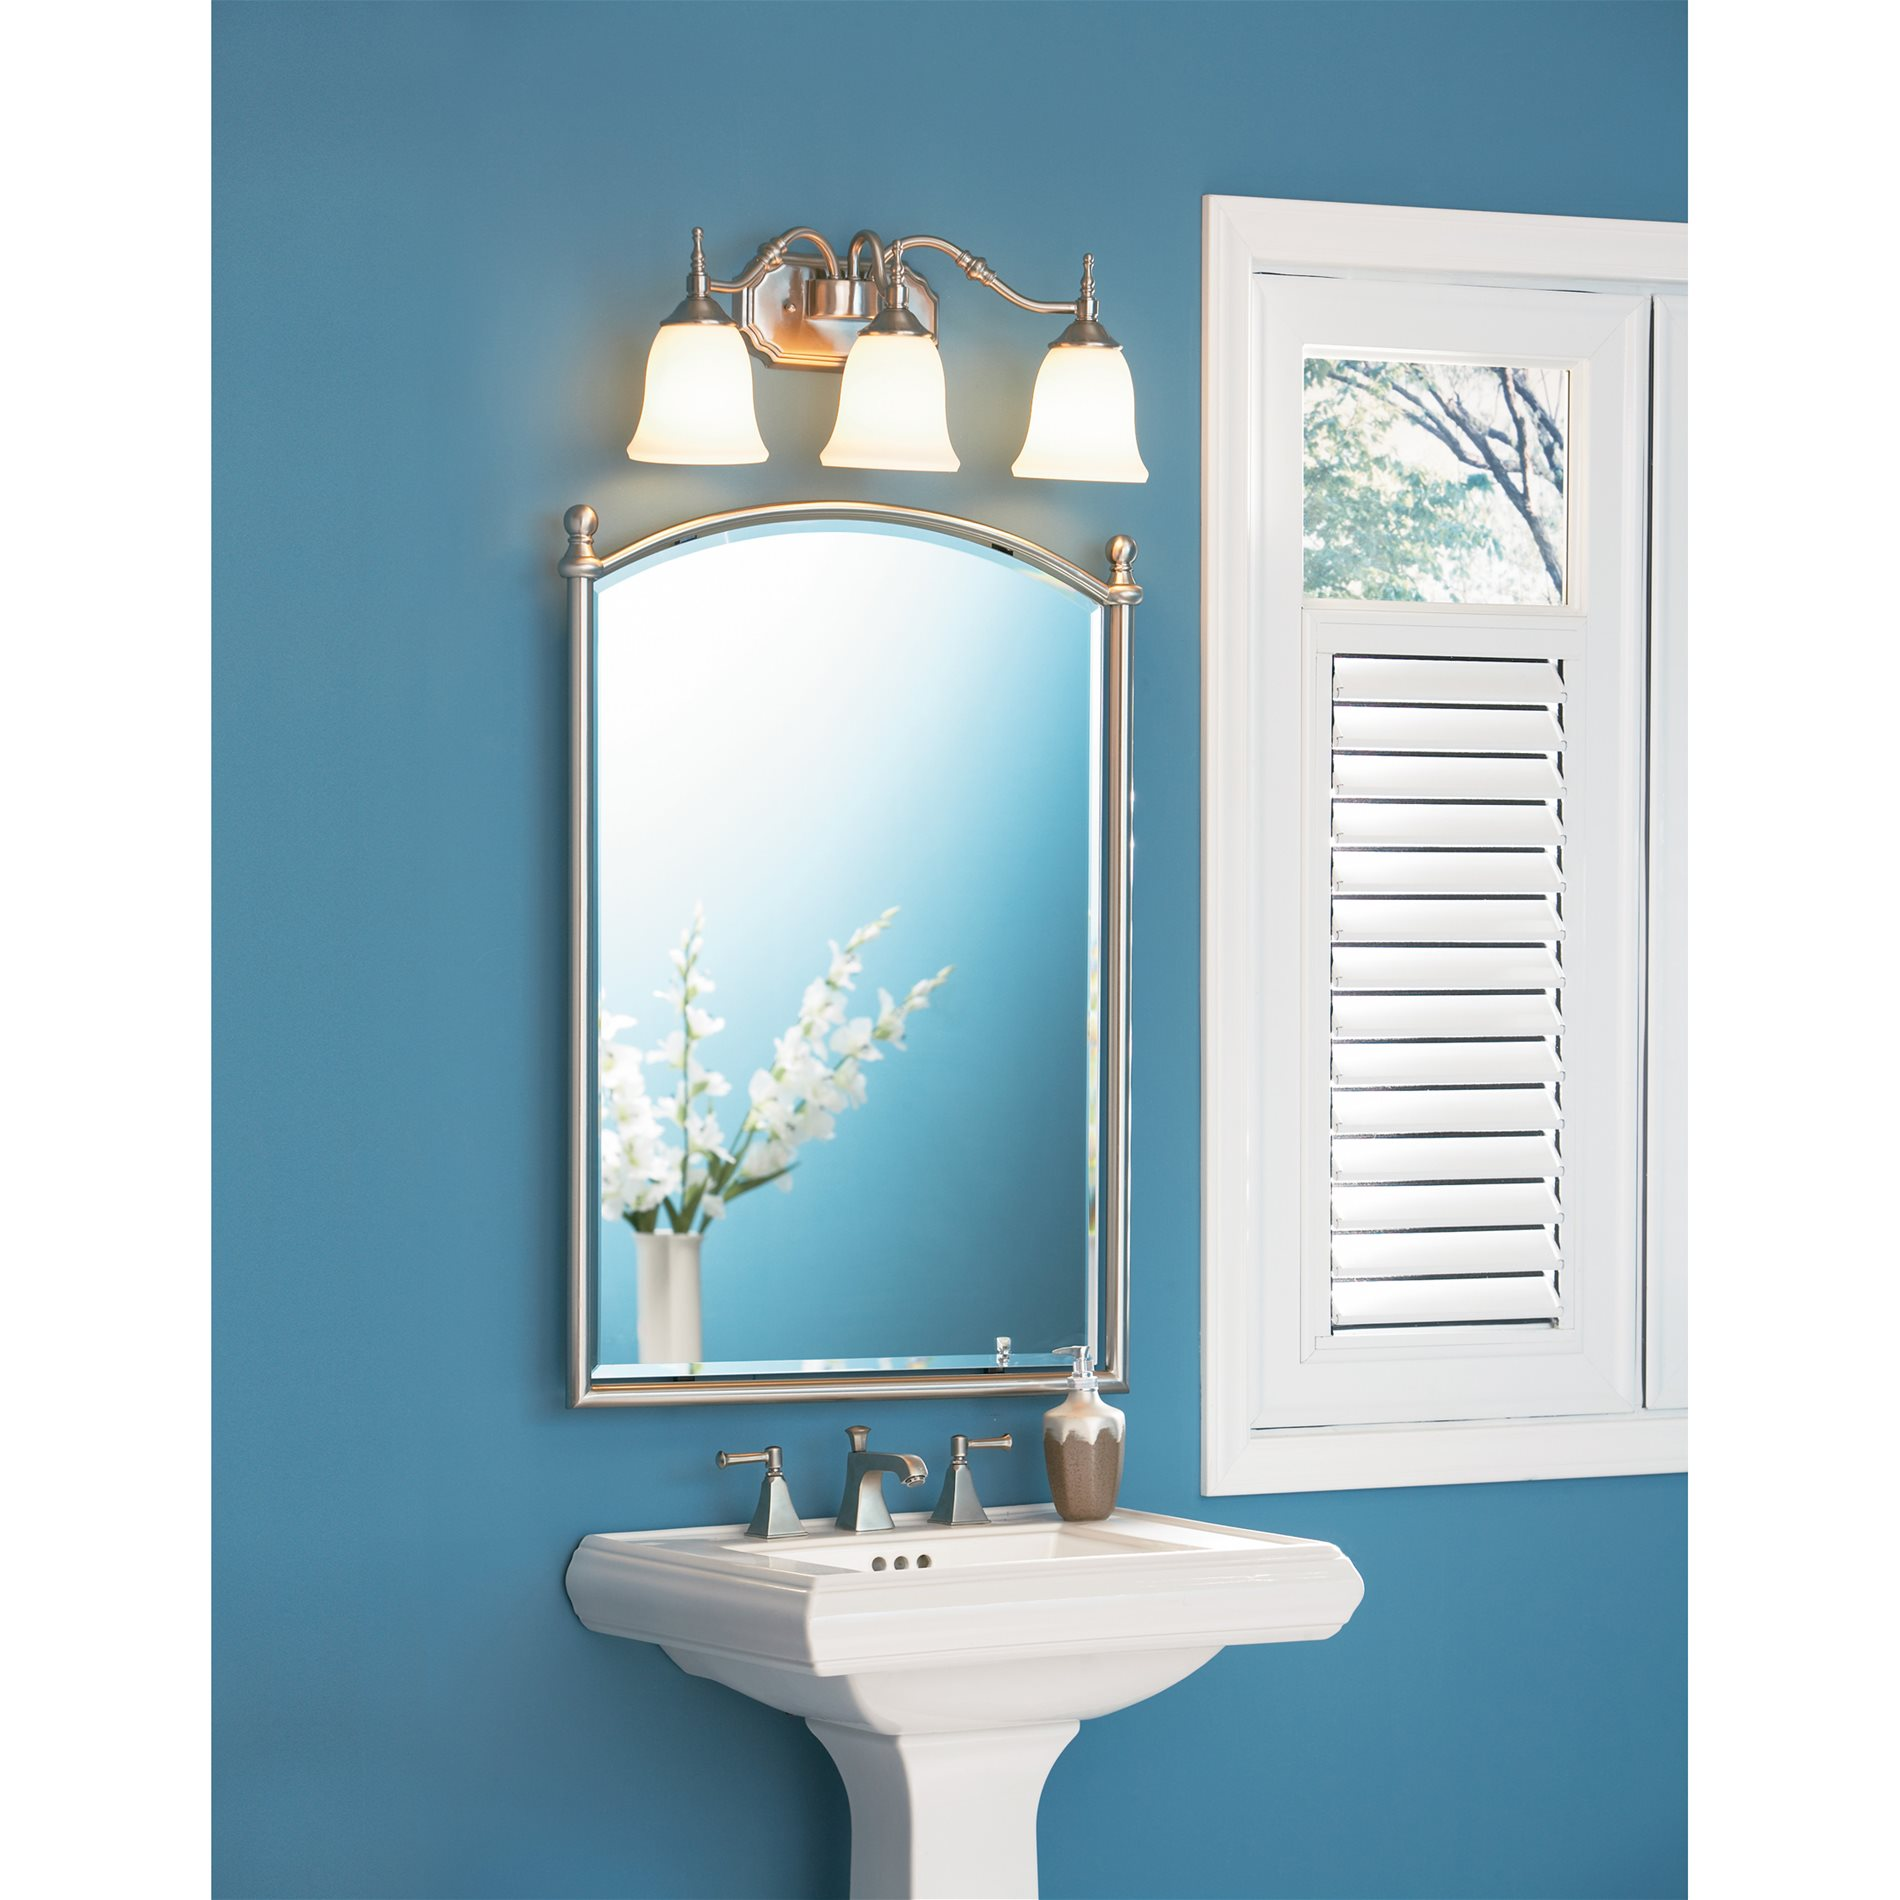 Quoizel Tt8743bn Tritan Transitional Bathroom Vanity Light Qz Tt8743bn